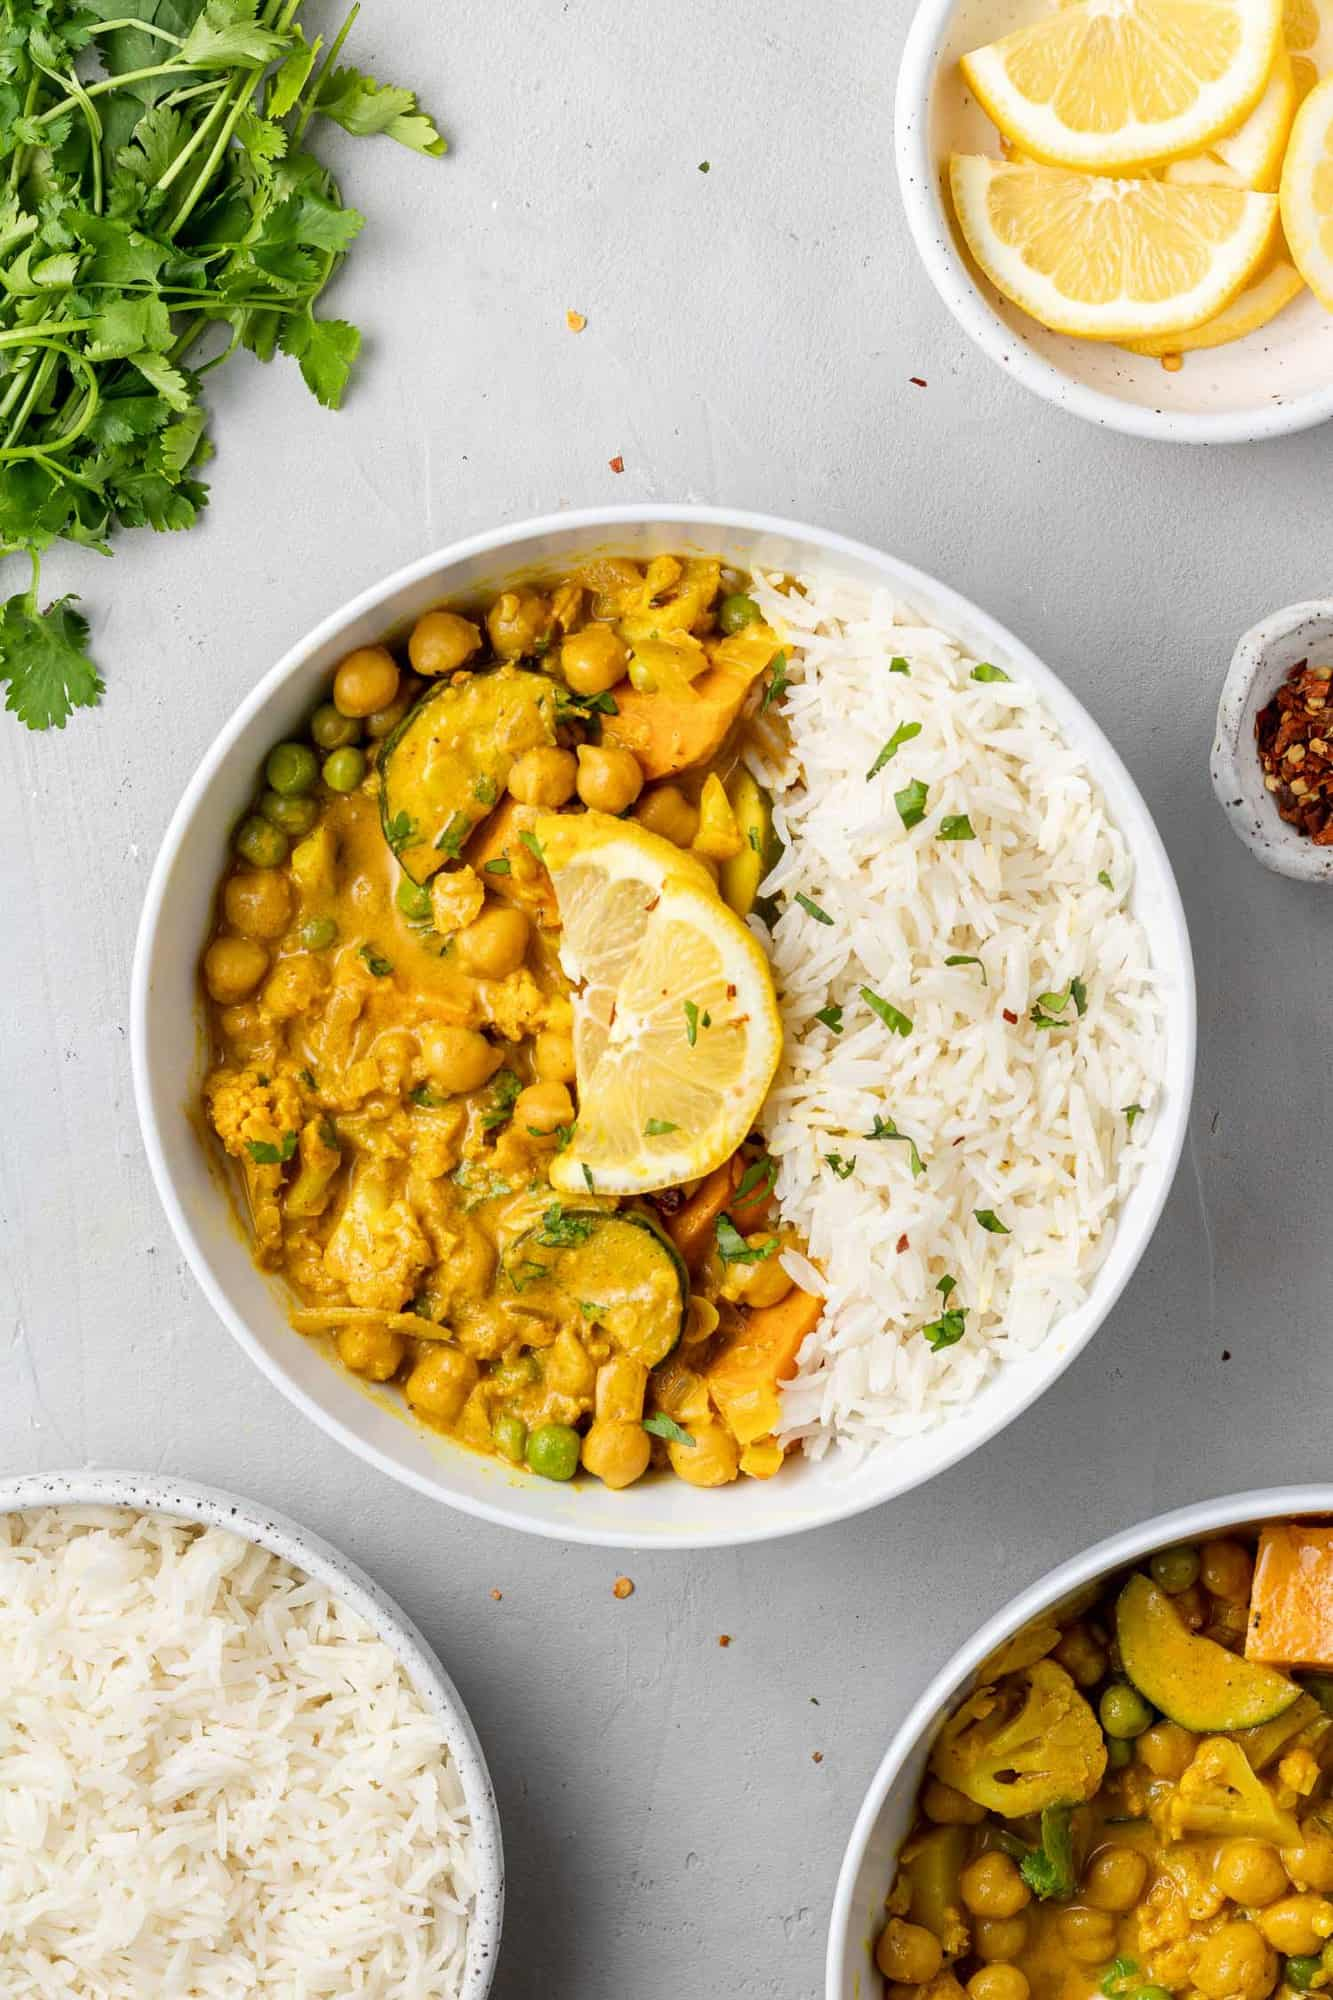 Overhead view of curry in a bowl with rice, sprinkled with cilantro.